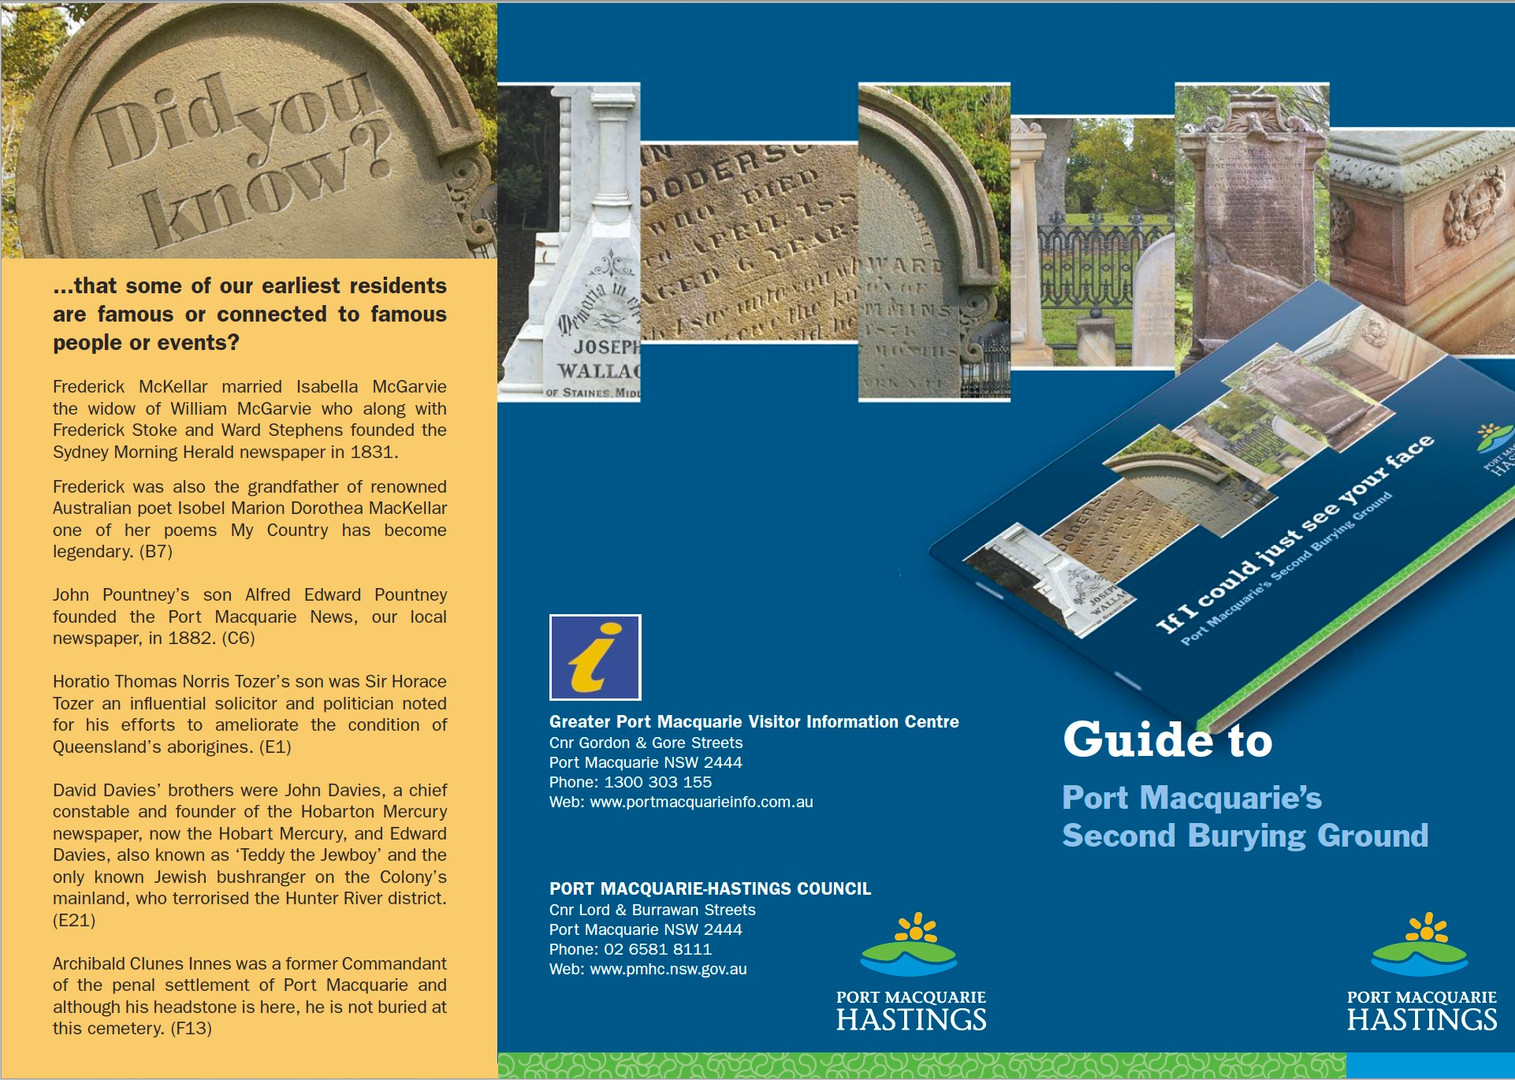 Guide to Port Macquarie's Second Burying Ground